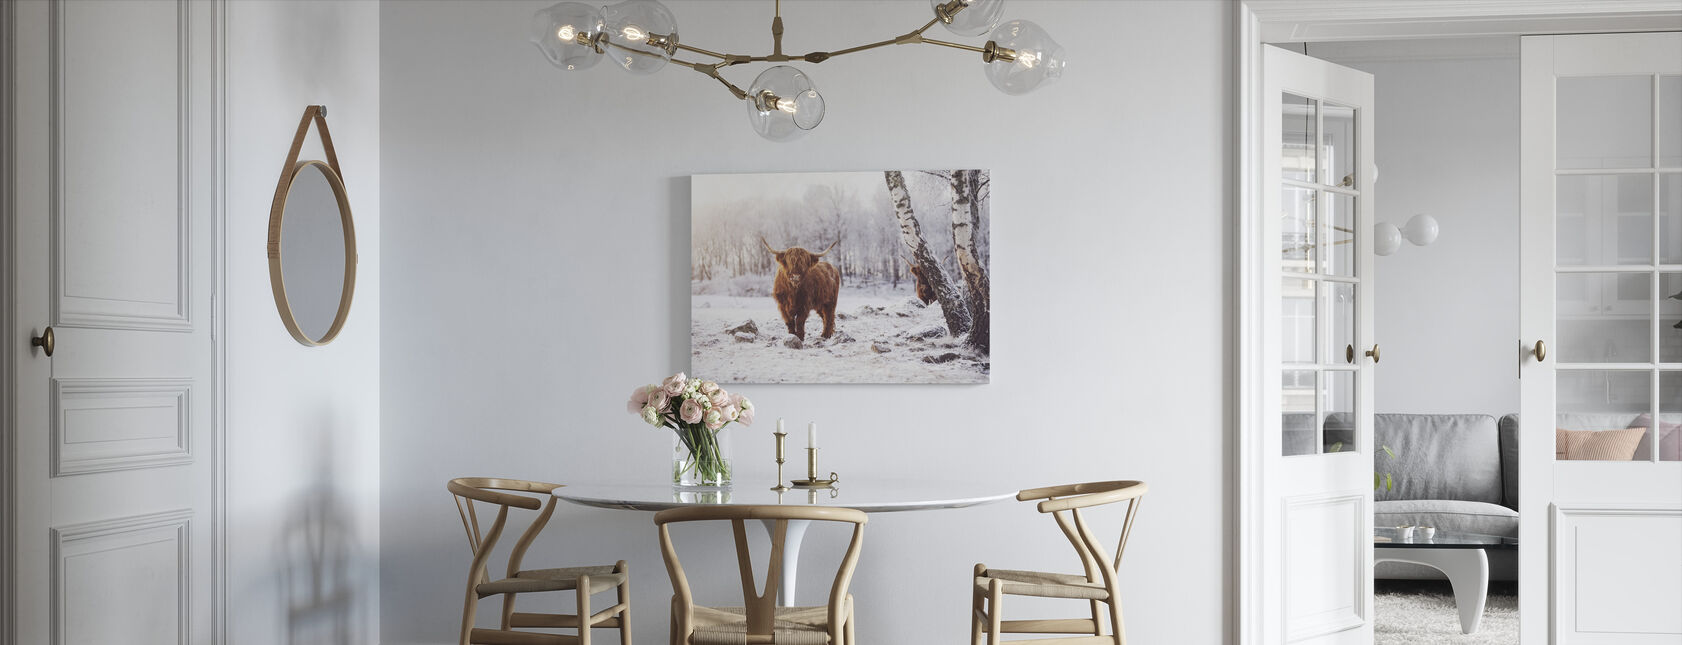 Highland Cattle - Canvas print - Kitchen